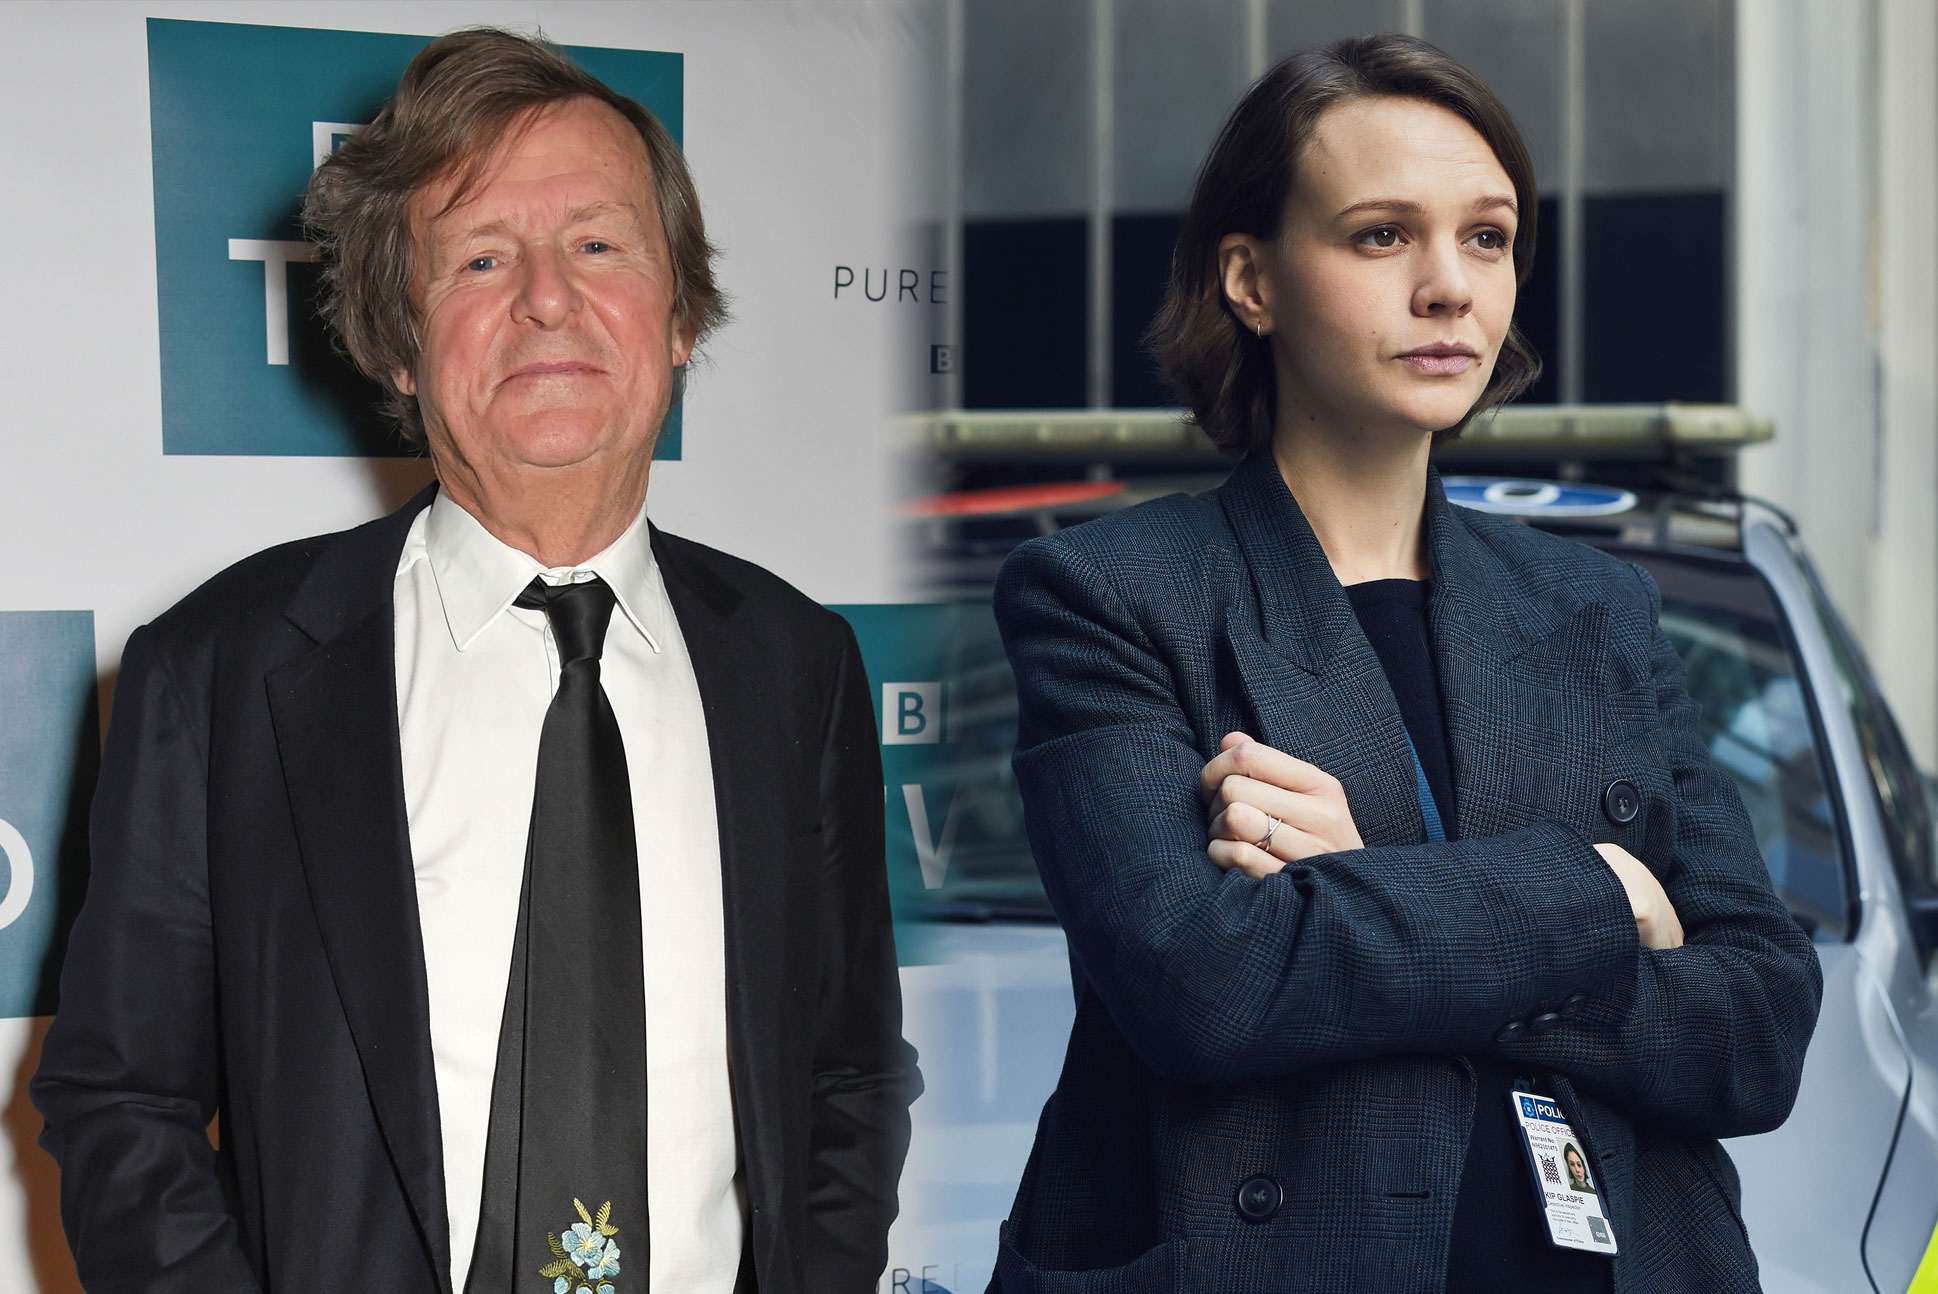 """Collateral writer David Hare: I was """"scared"""" by prospect of making full TV series"""